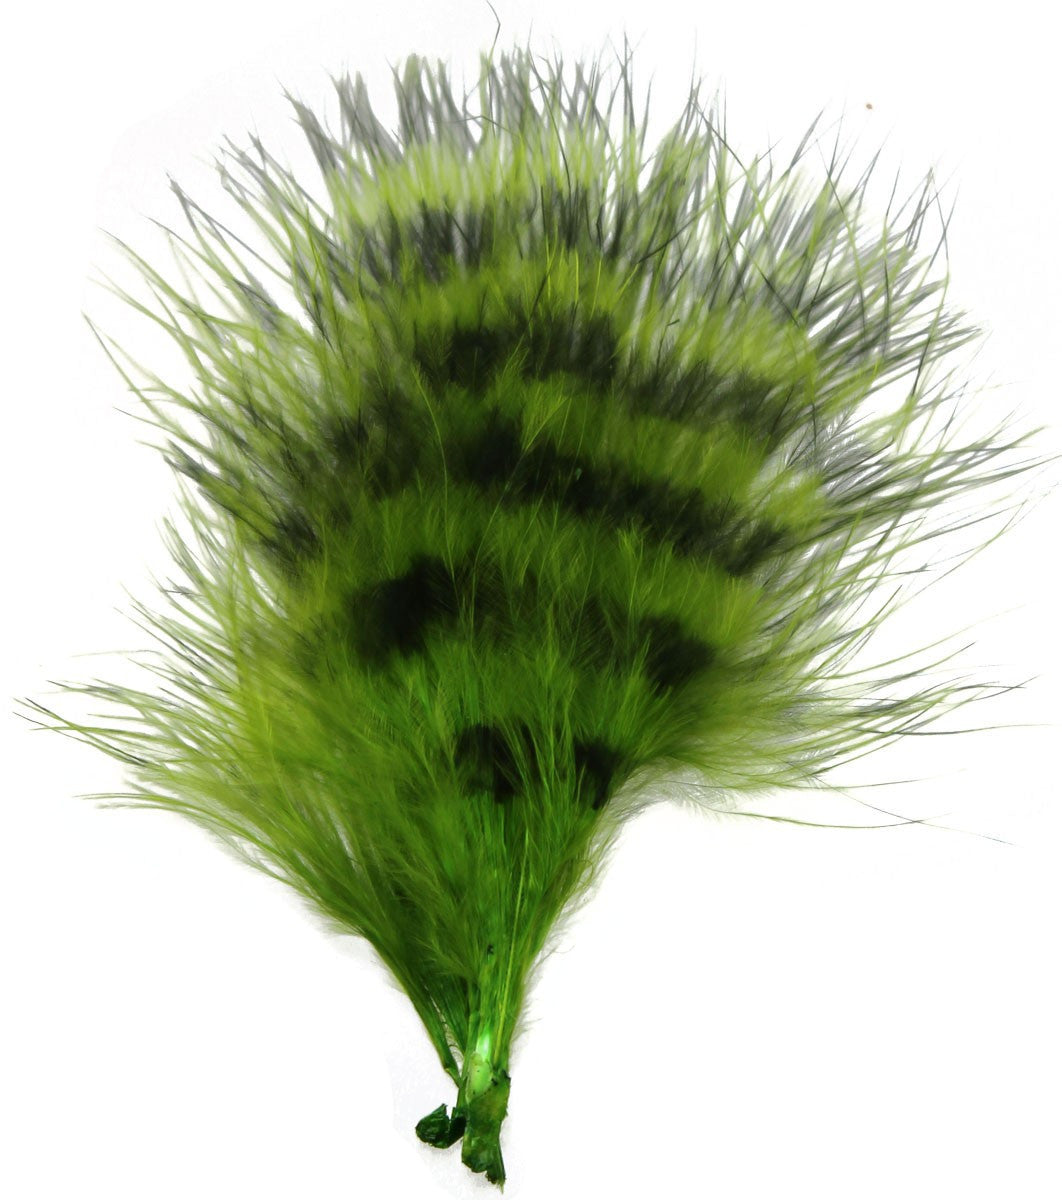 JailHouse Marabou - The TroutFitter Fly Shop